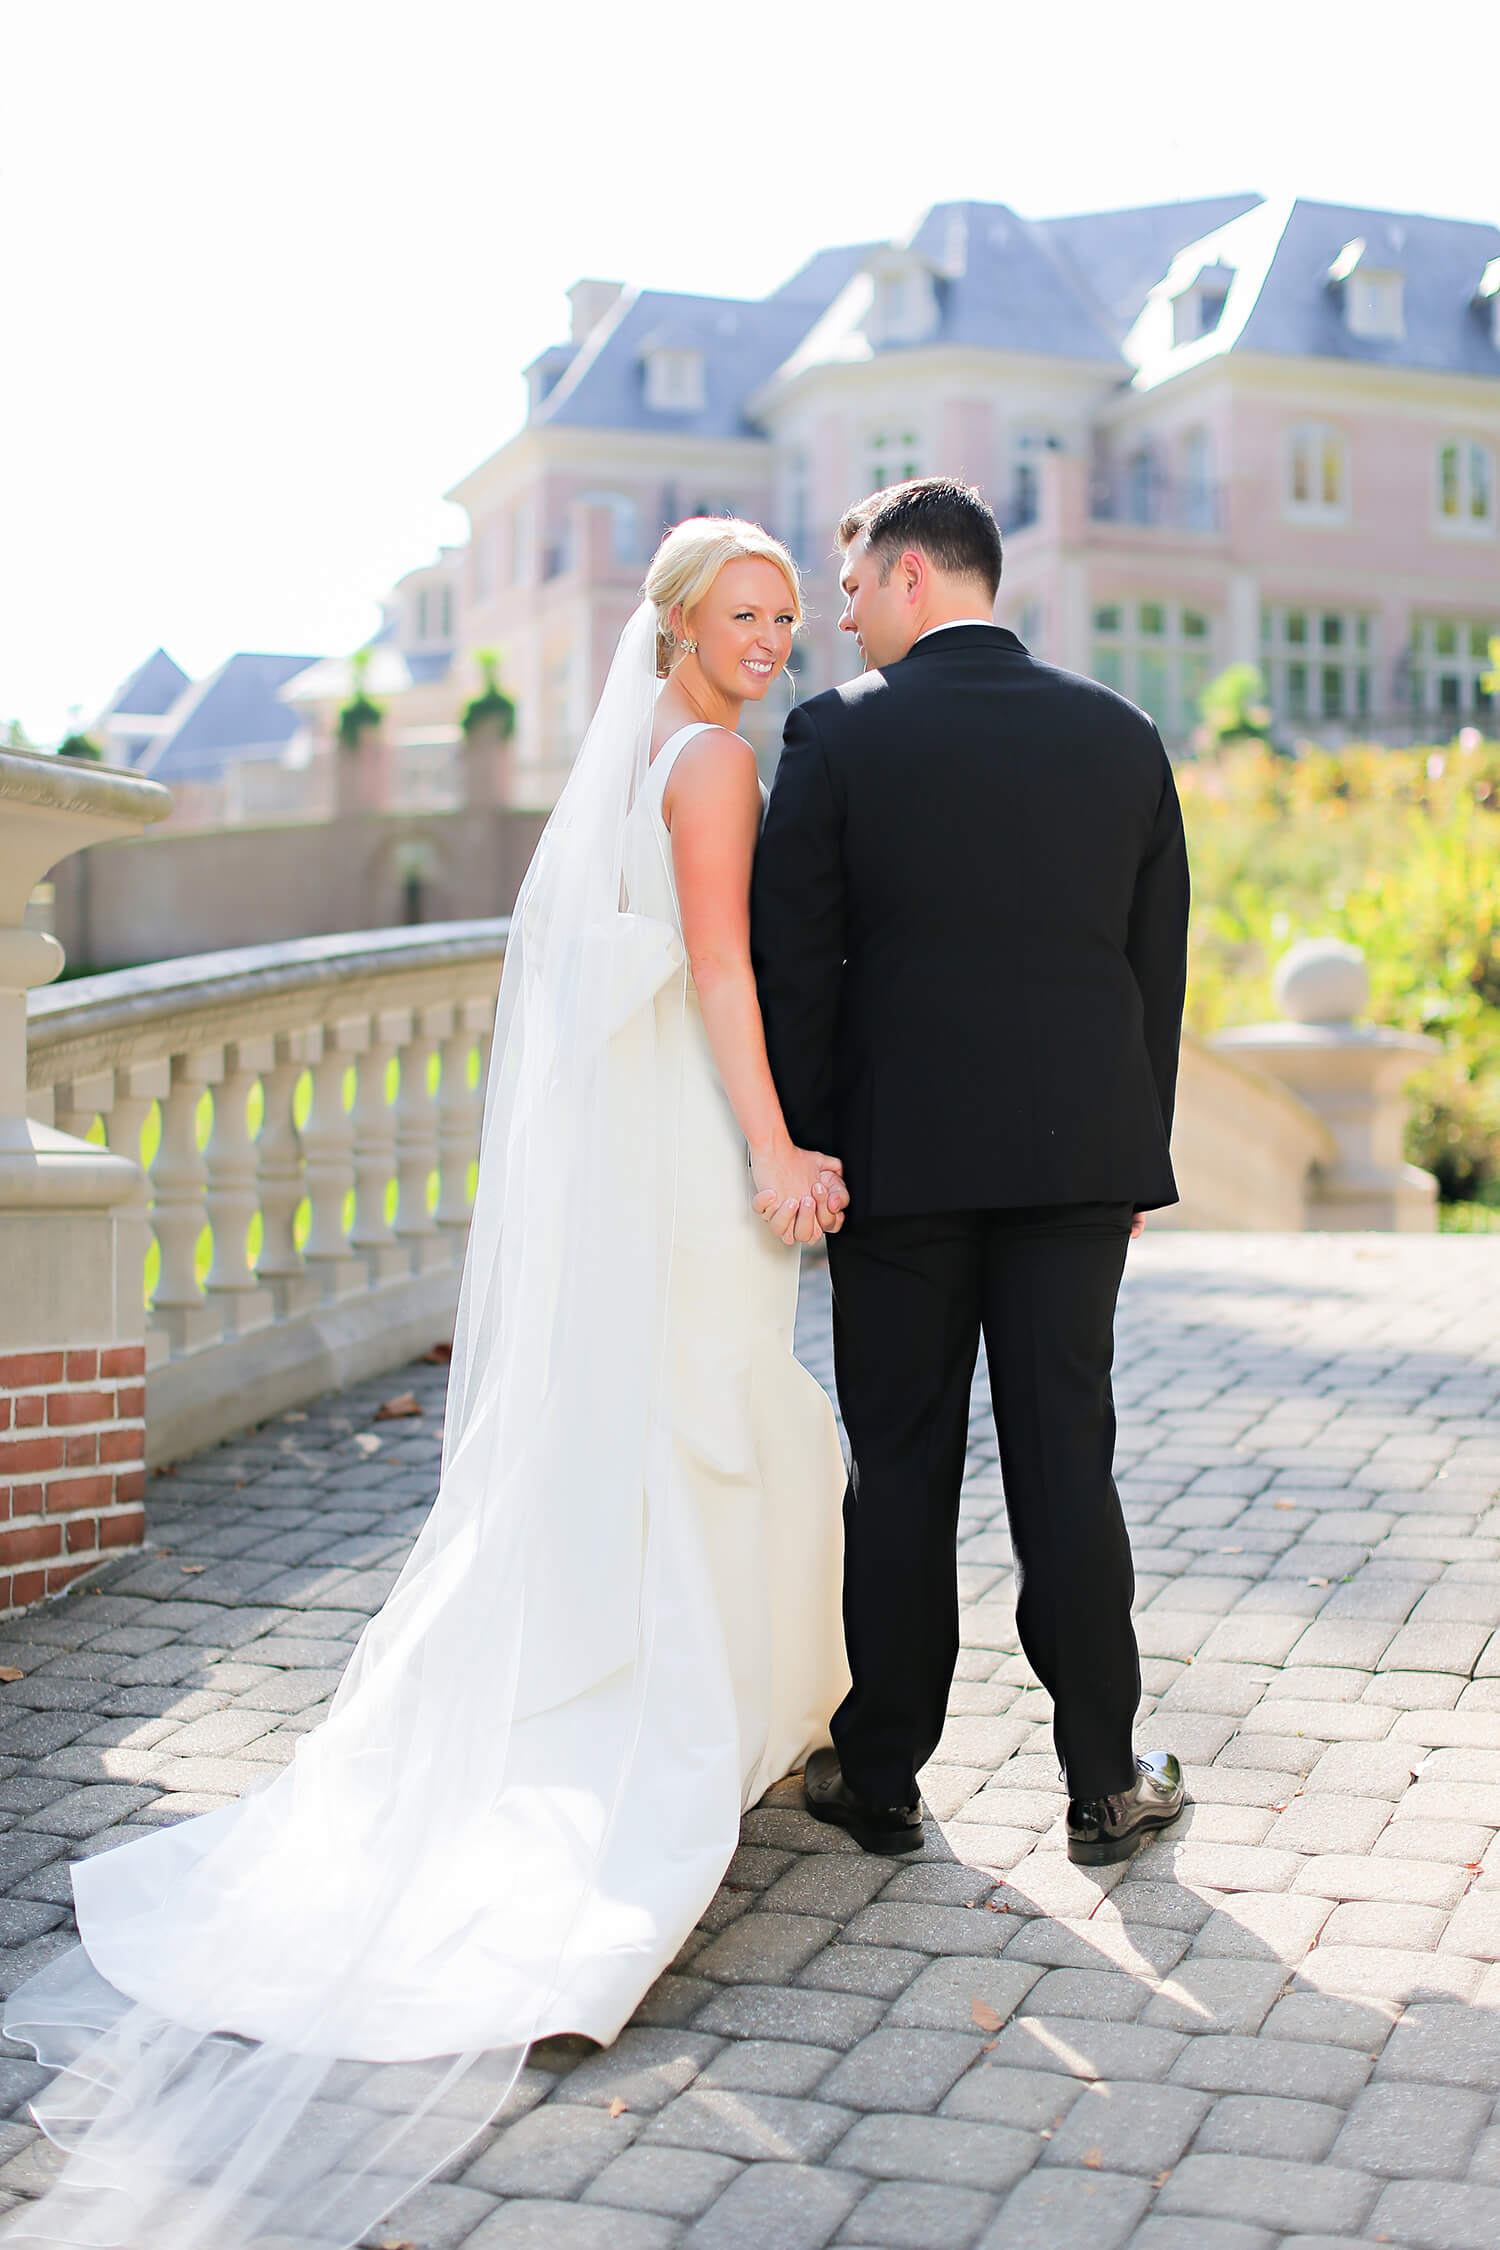 Chelsea-Tom-s-Wedding-ChelseaTomWedding-0092